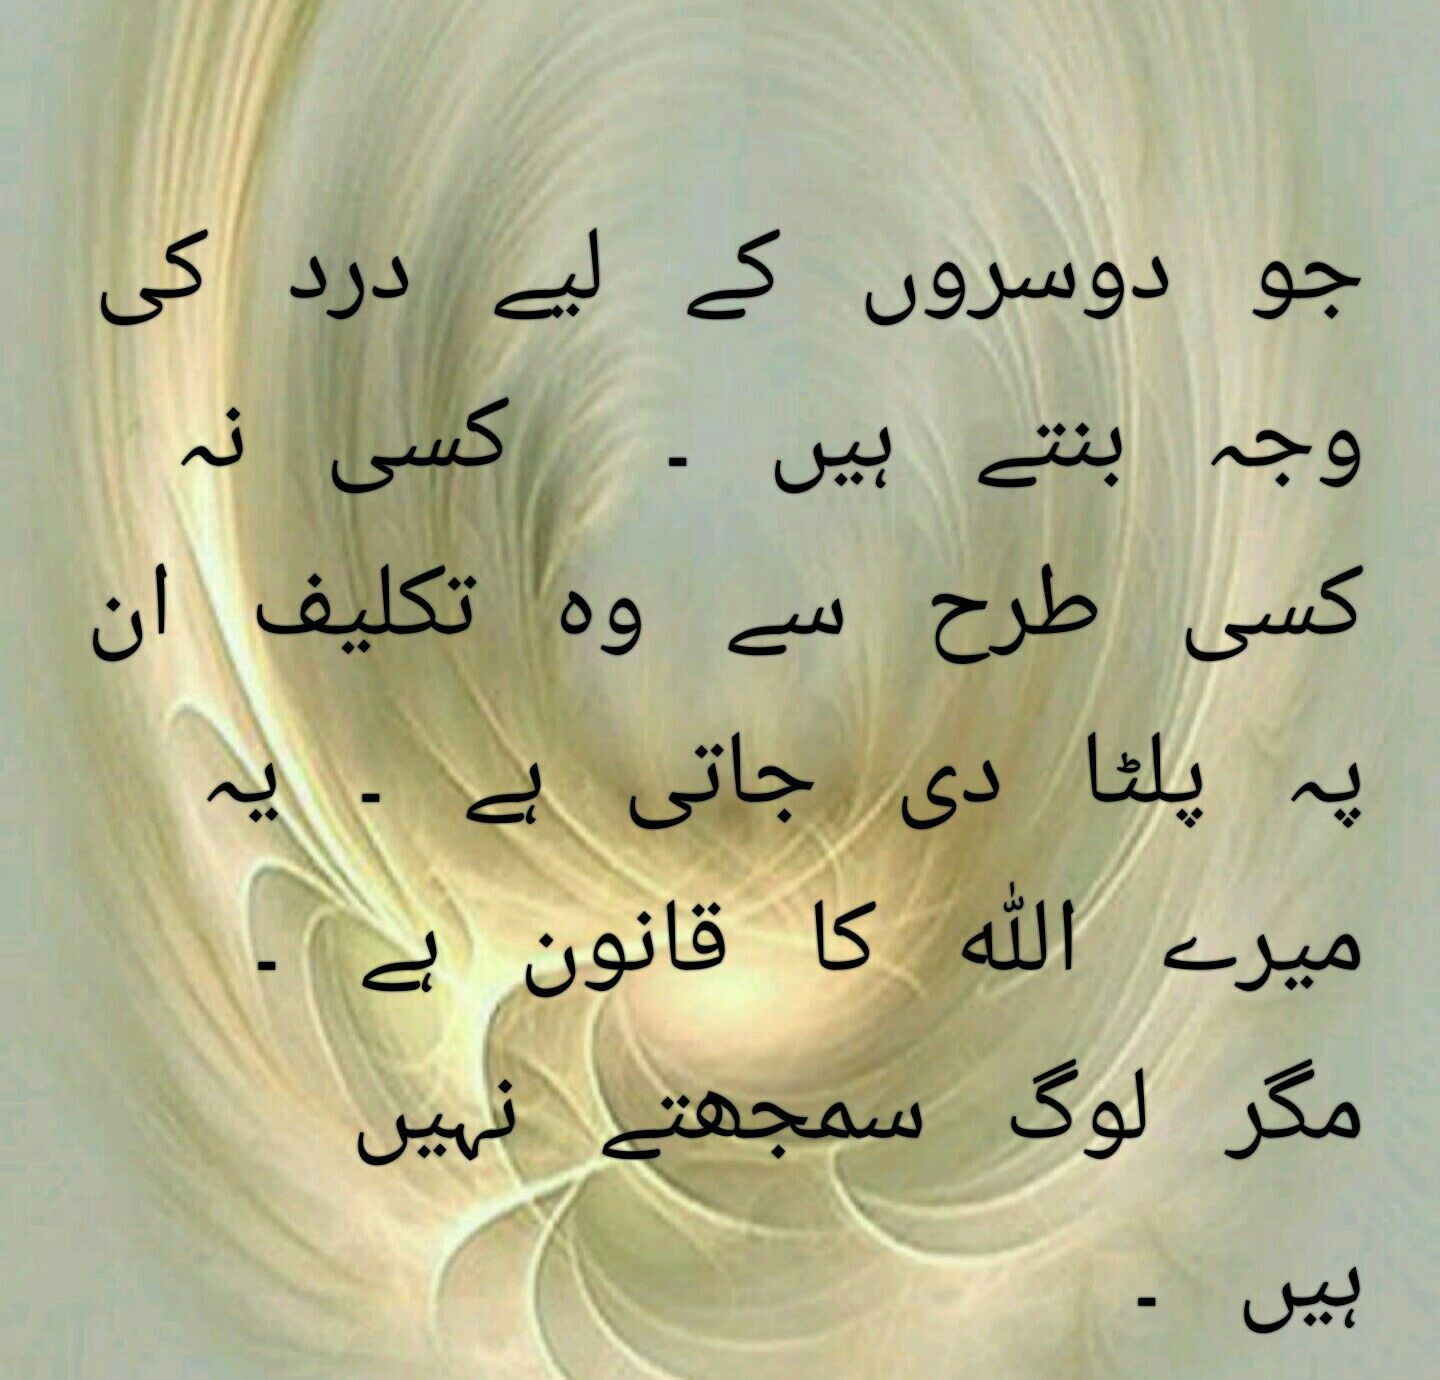 Awesome Urdu Quotes About Life With English Translation